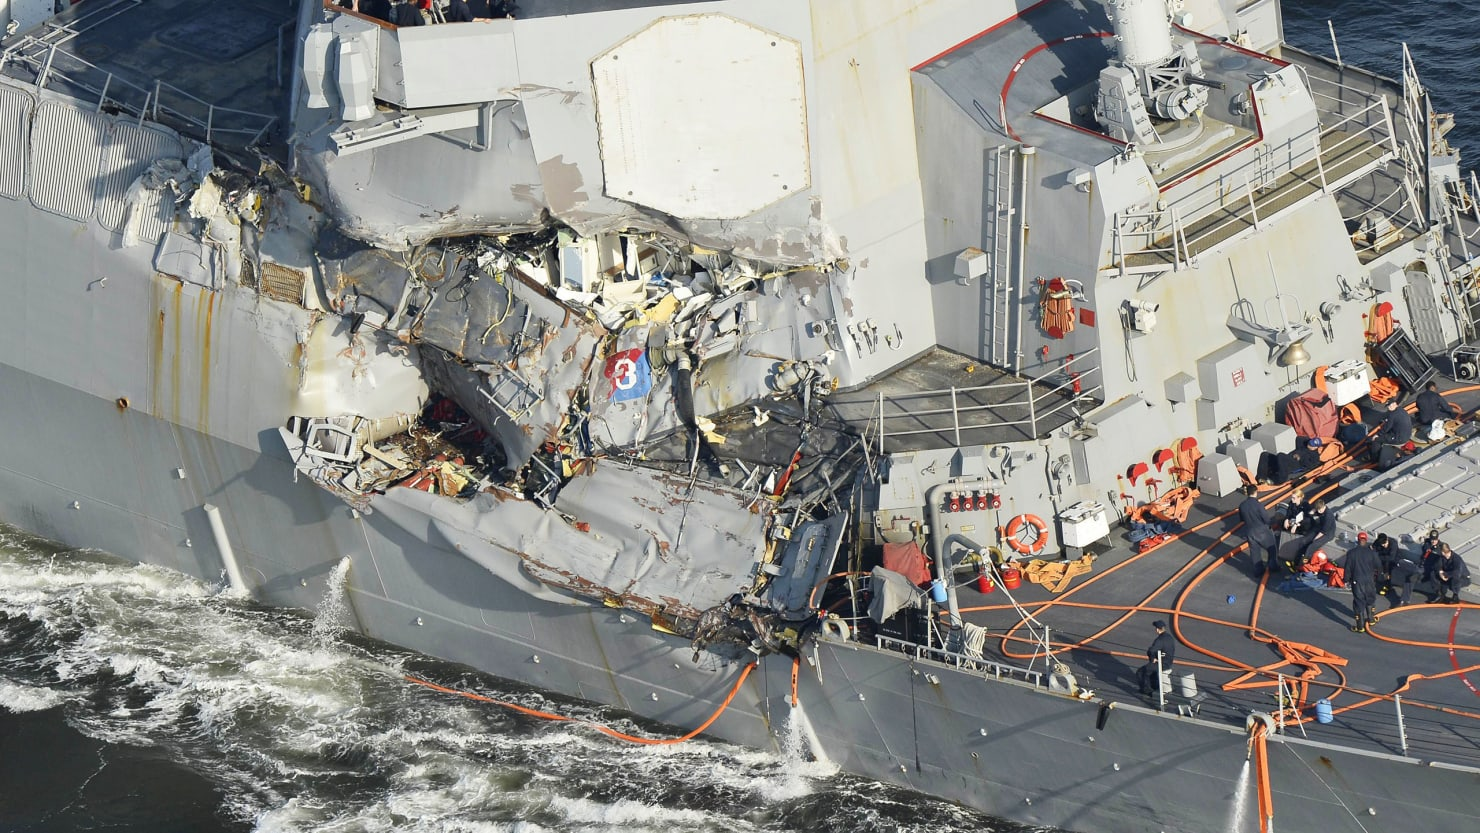 Photo taken in June 2017 shows the U.S. Navy destroyer Fitzgerald after a fatal collision with a Filipino container ship off the Japan coast.